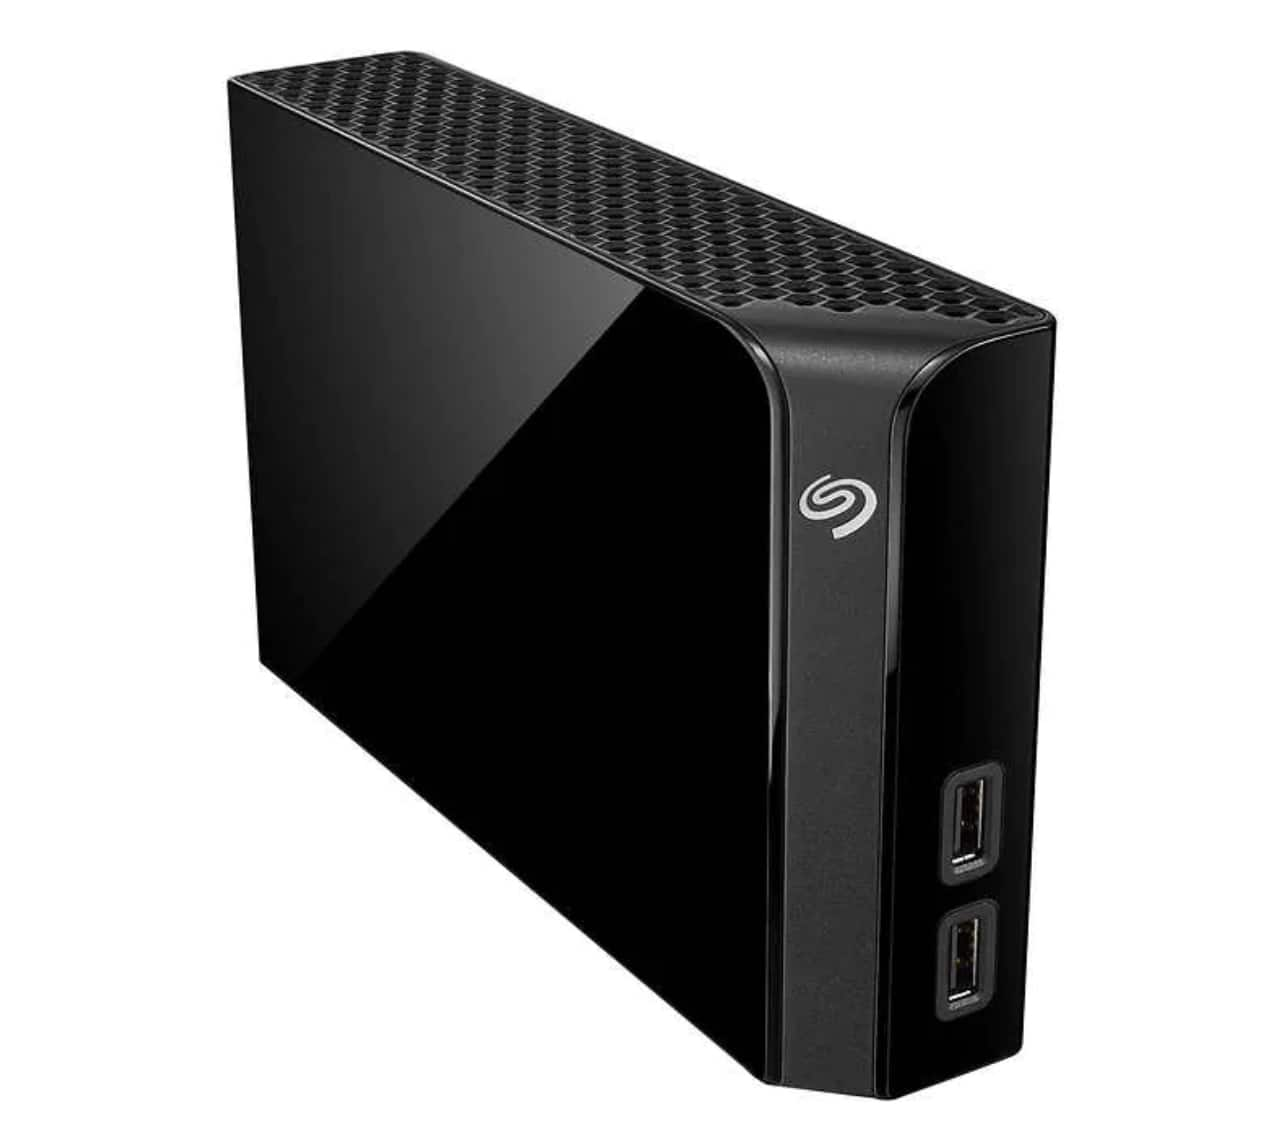 Seagate Backup Plus Hub 8TB Desktop Hard Drive with Rescue Data Recovery Services $120 @ Costco starting April 14th